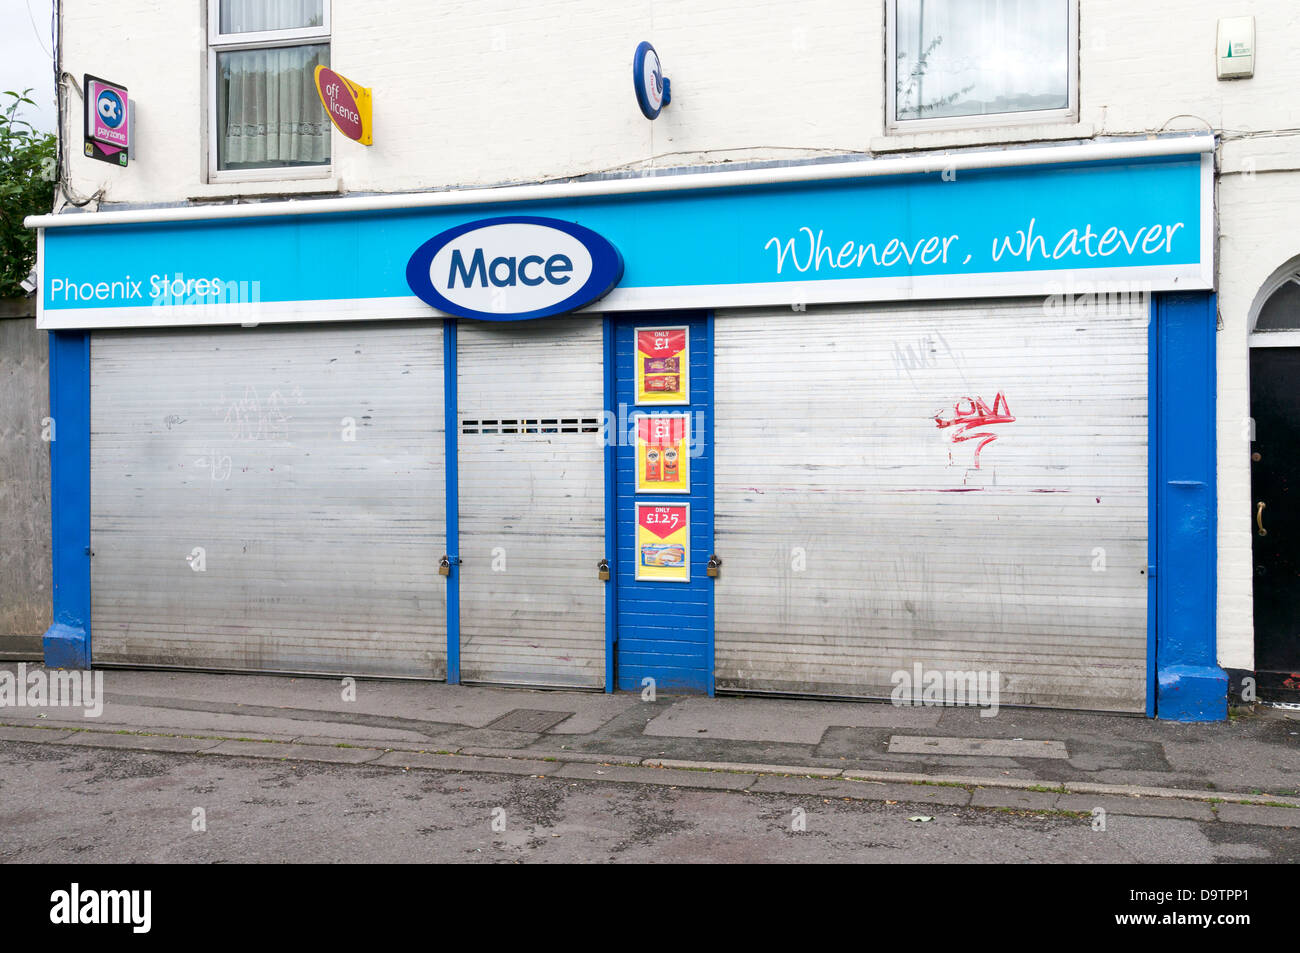 Steel roller security shutters protecting the door and windows of a UK Mace convenience store from vandalism  sc 1 st  Alamy & Steel roller security shutters protecting the door and windows of a ...